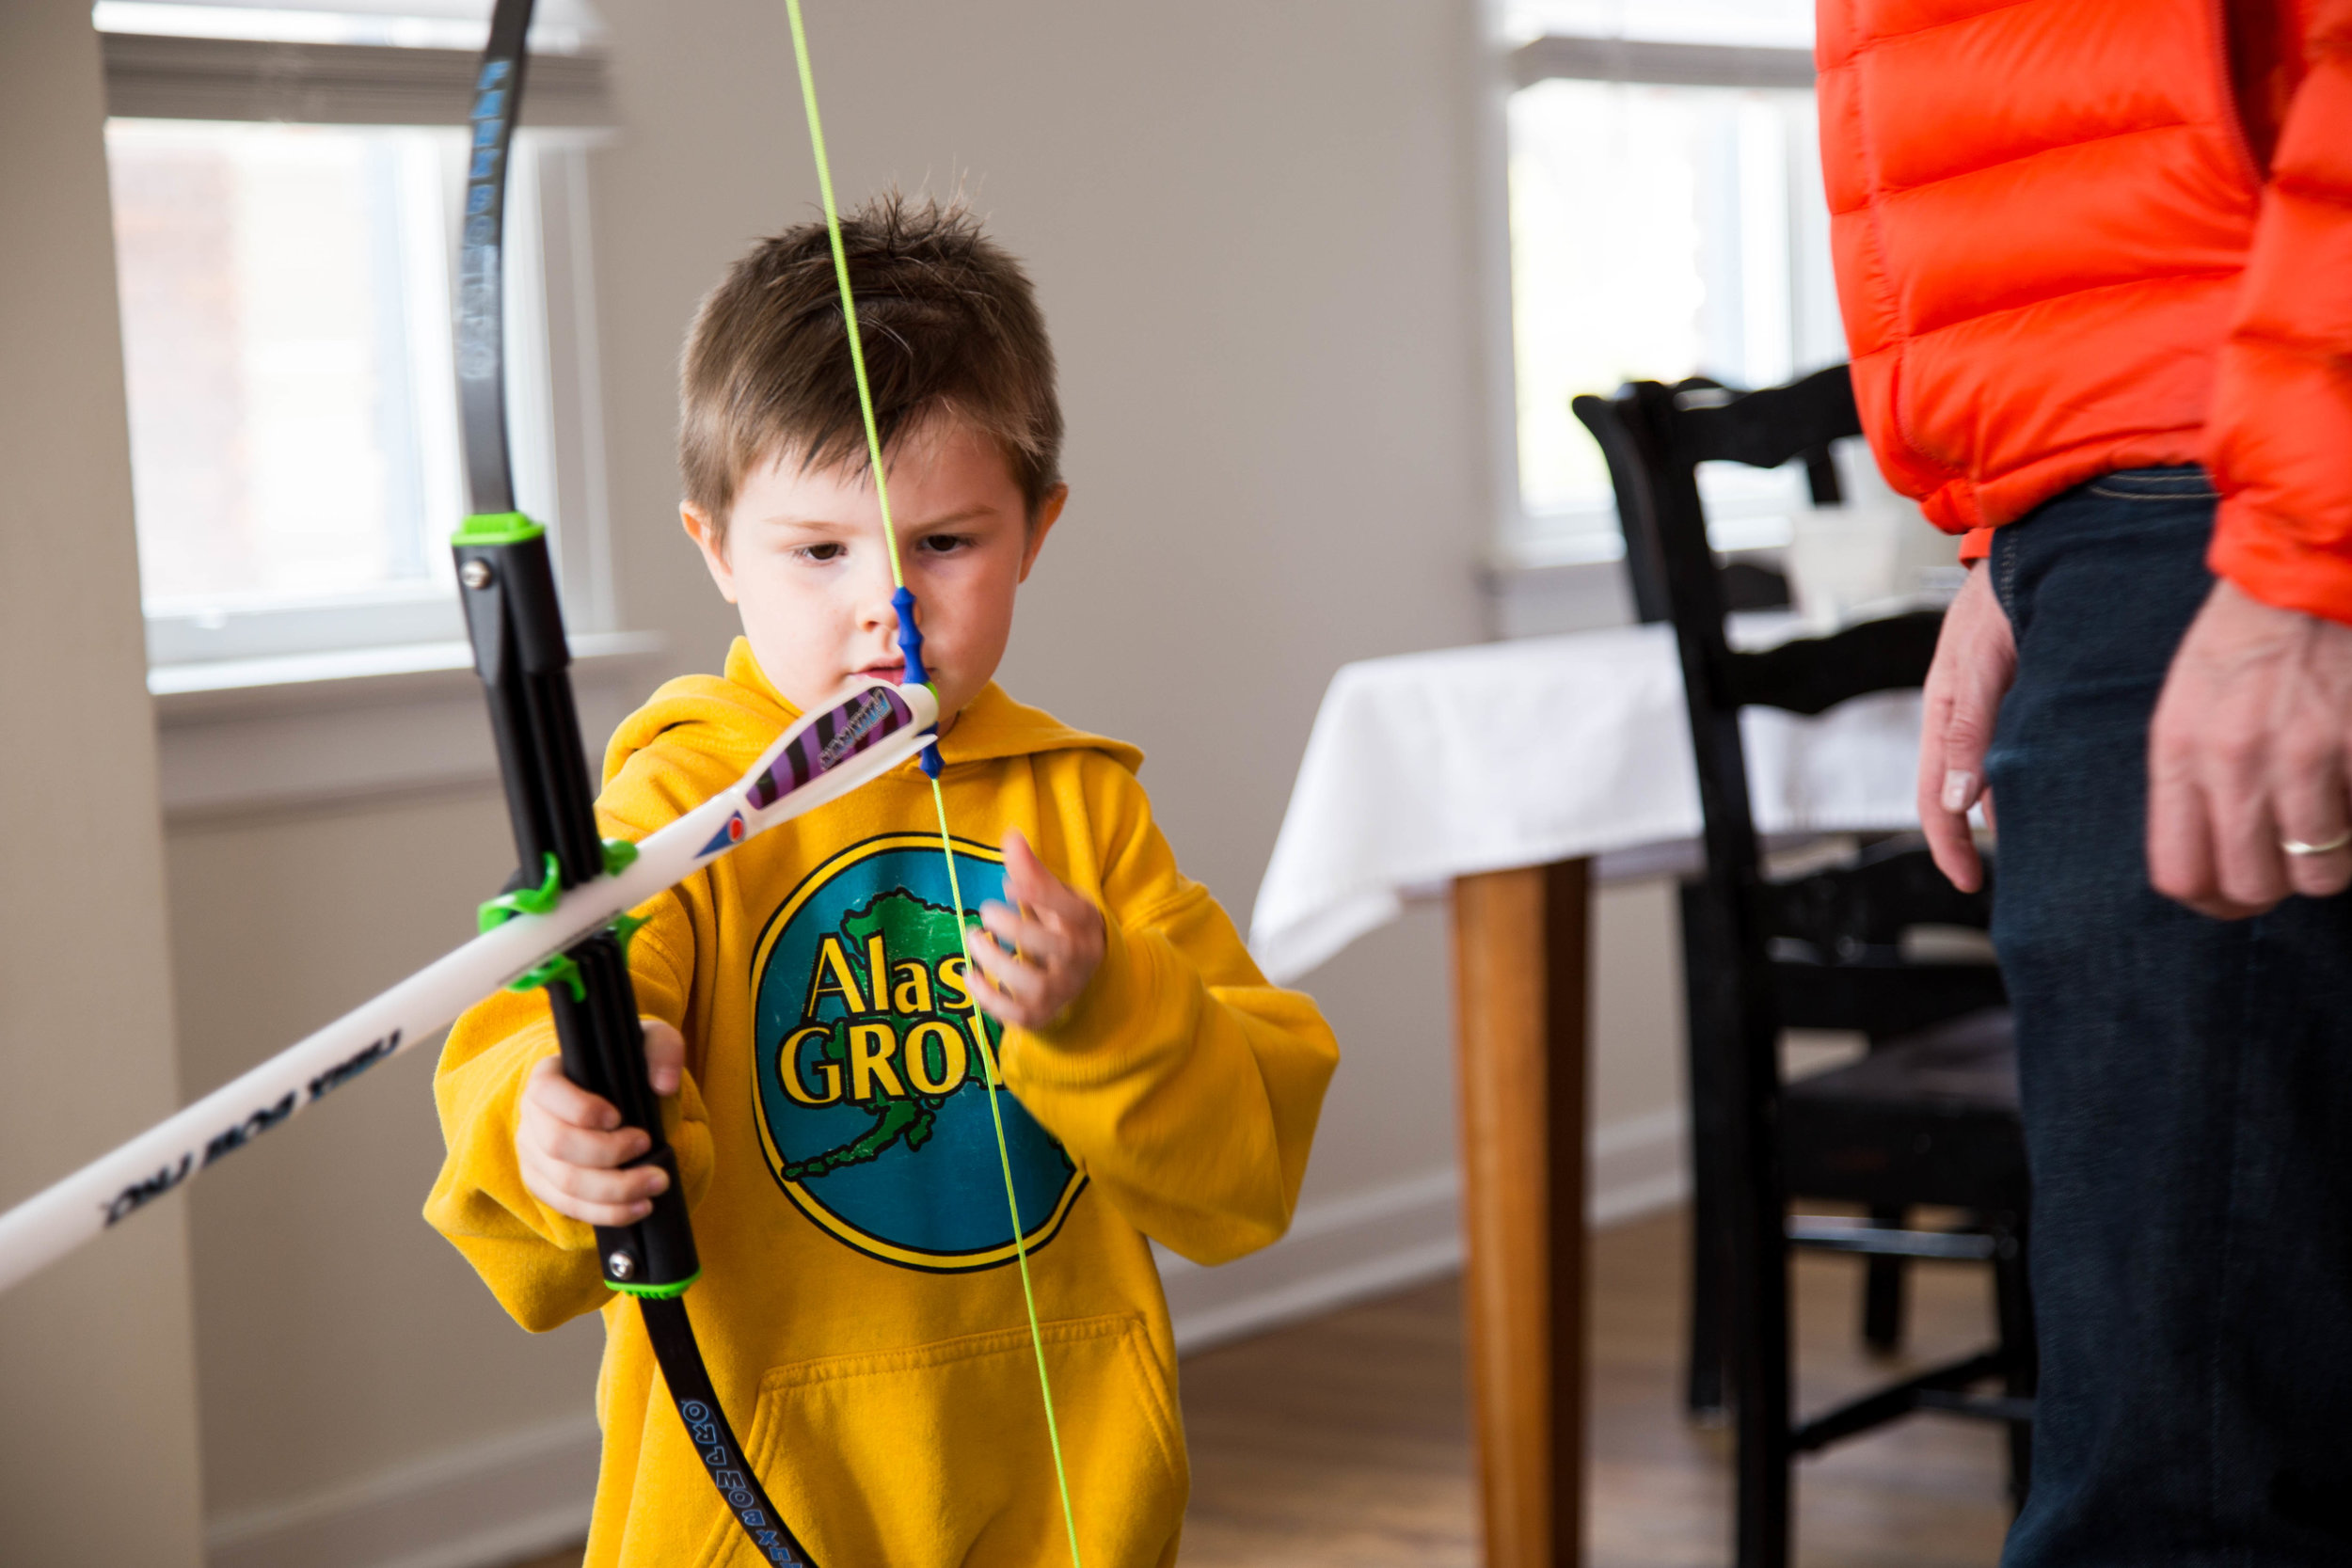 He's been taking about getting a bow and arrow for a good long time. So fun to see him use it!